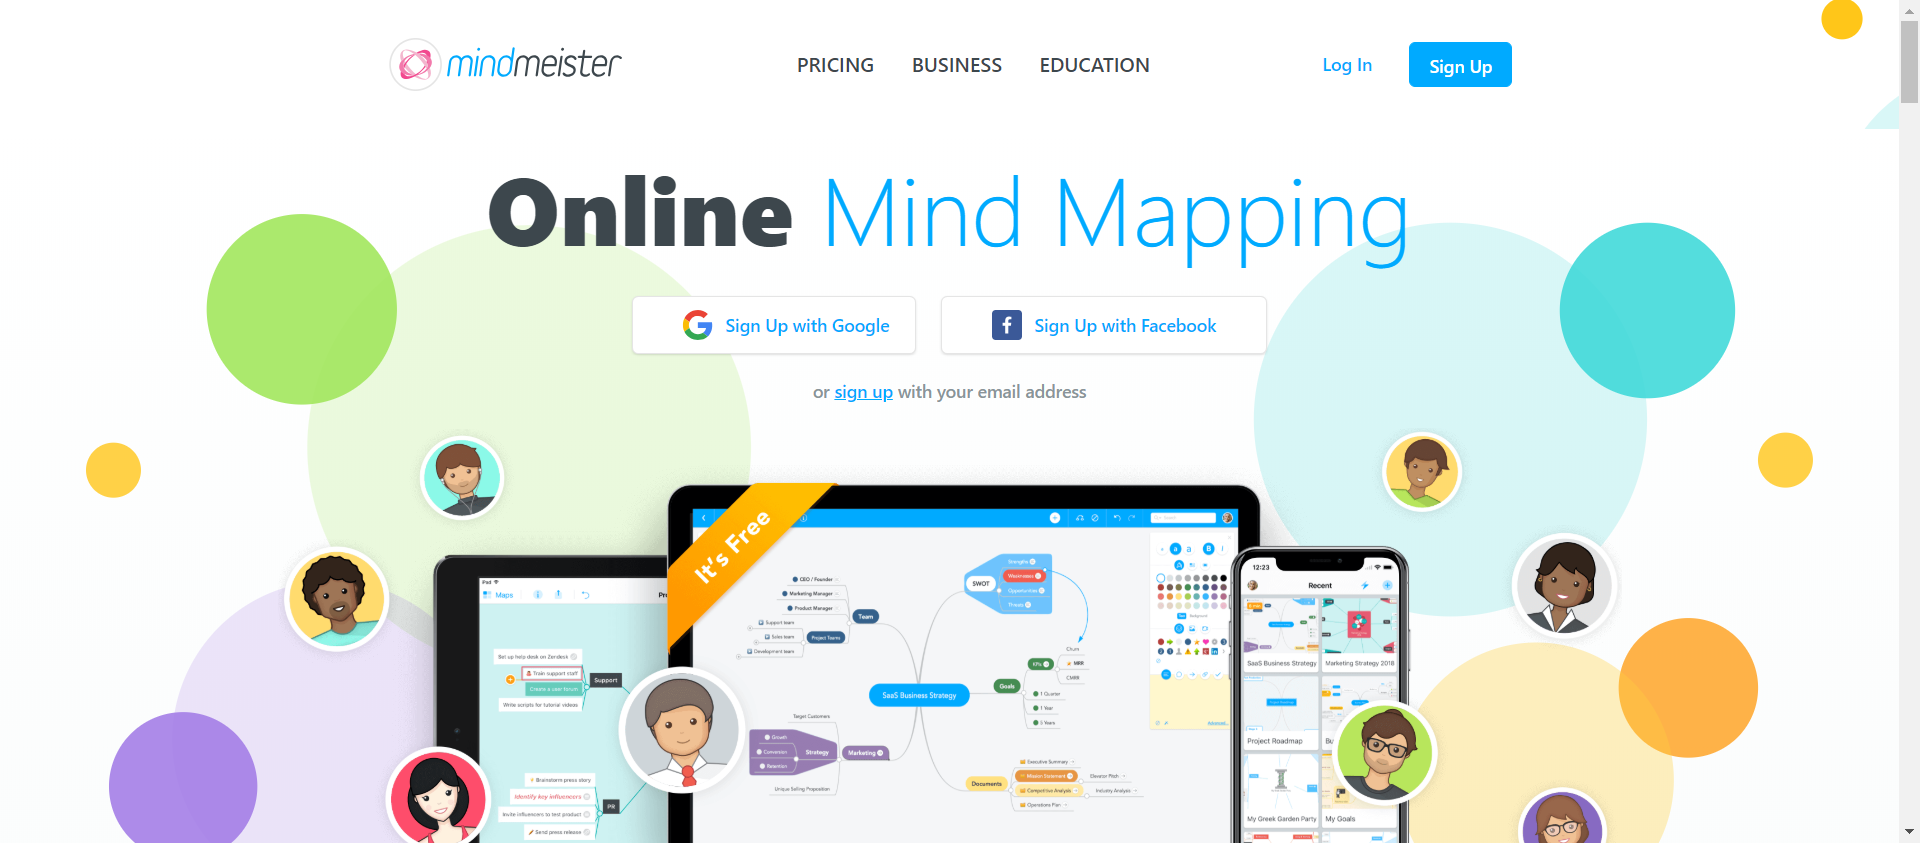 MindMeister website image